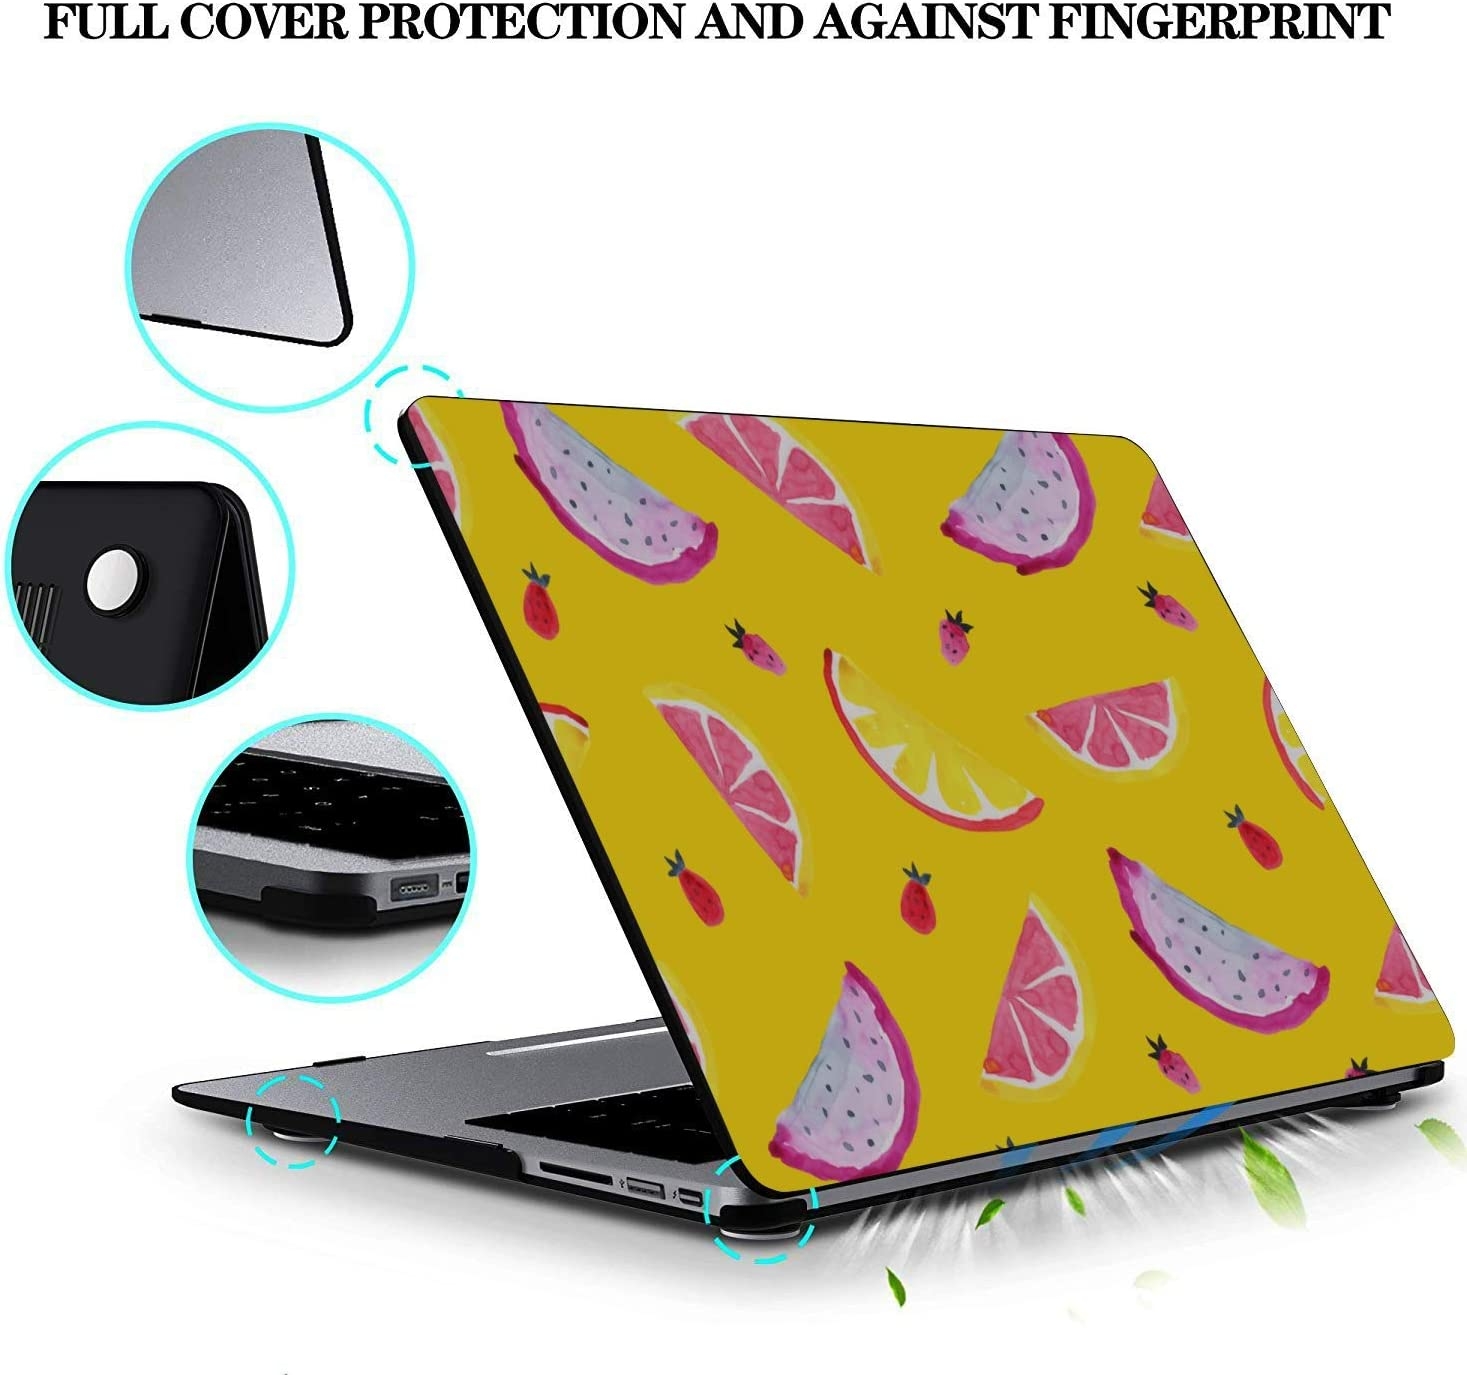 MacBook Pro 15 Case Sweet Art Tropical Fruit Dragon Leaf Plastic Hard Shell Compatible Mac Air 11 Pro 13 15 MacBook Pro 15 Cover Protection for MacBook 2016-2019 Version